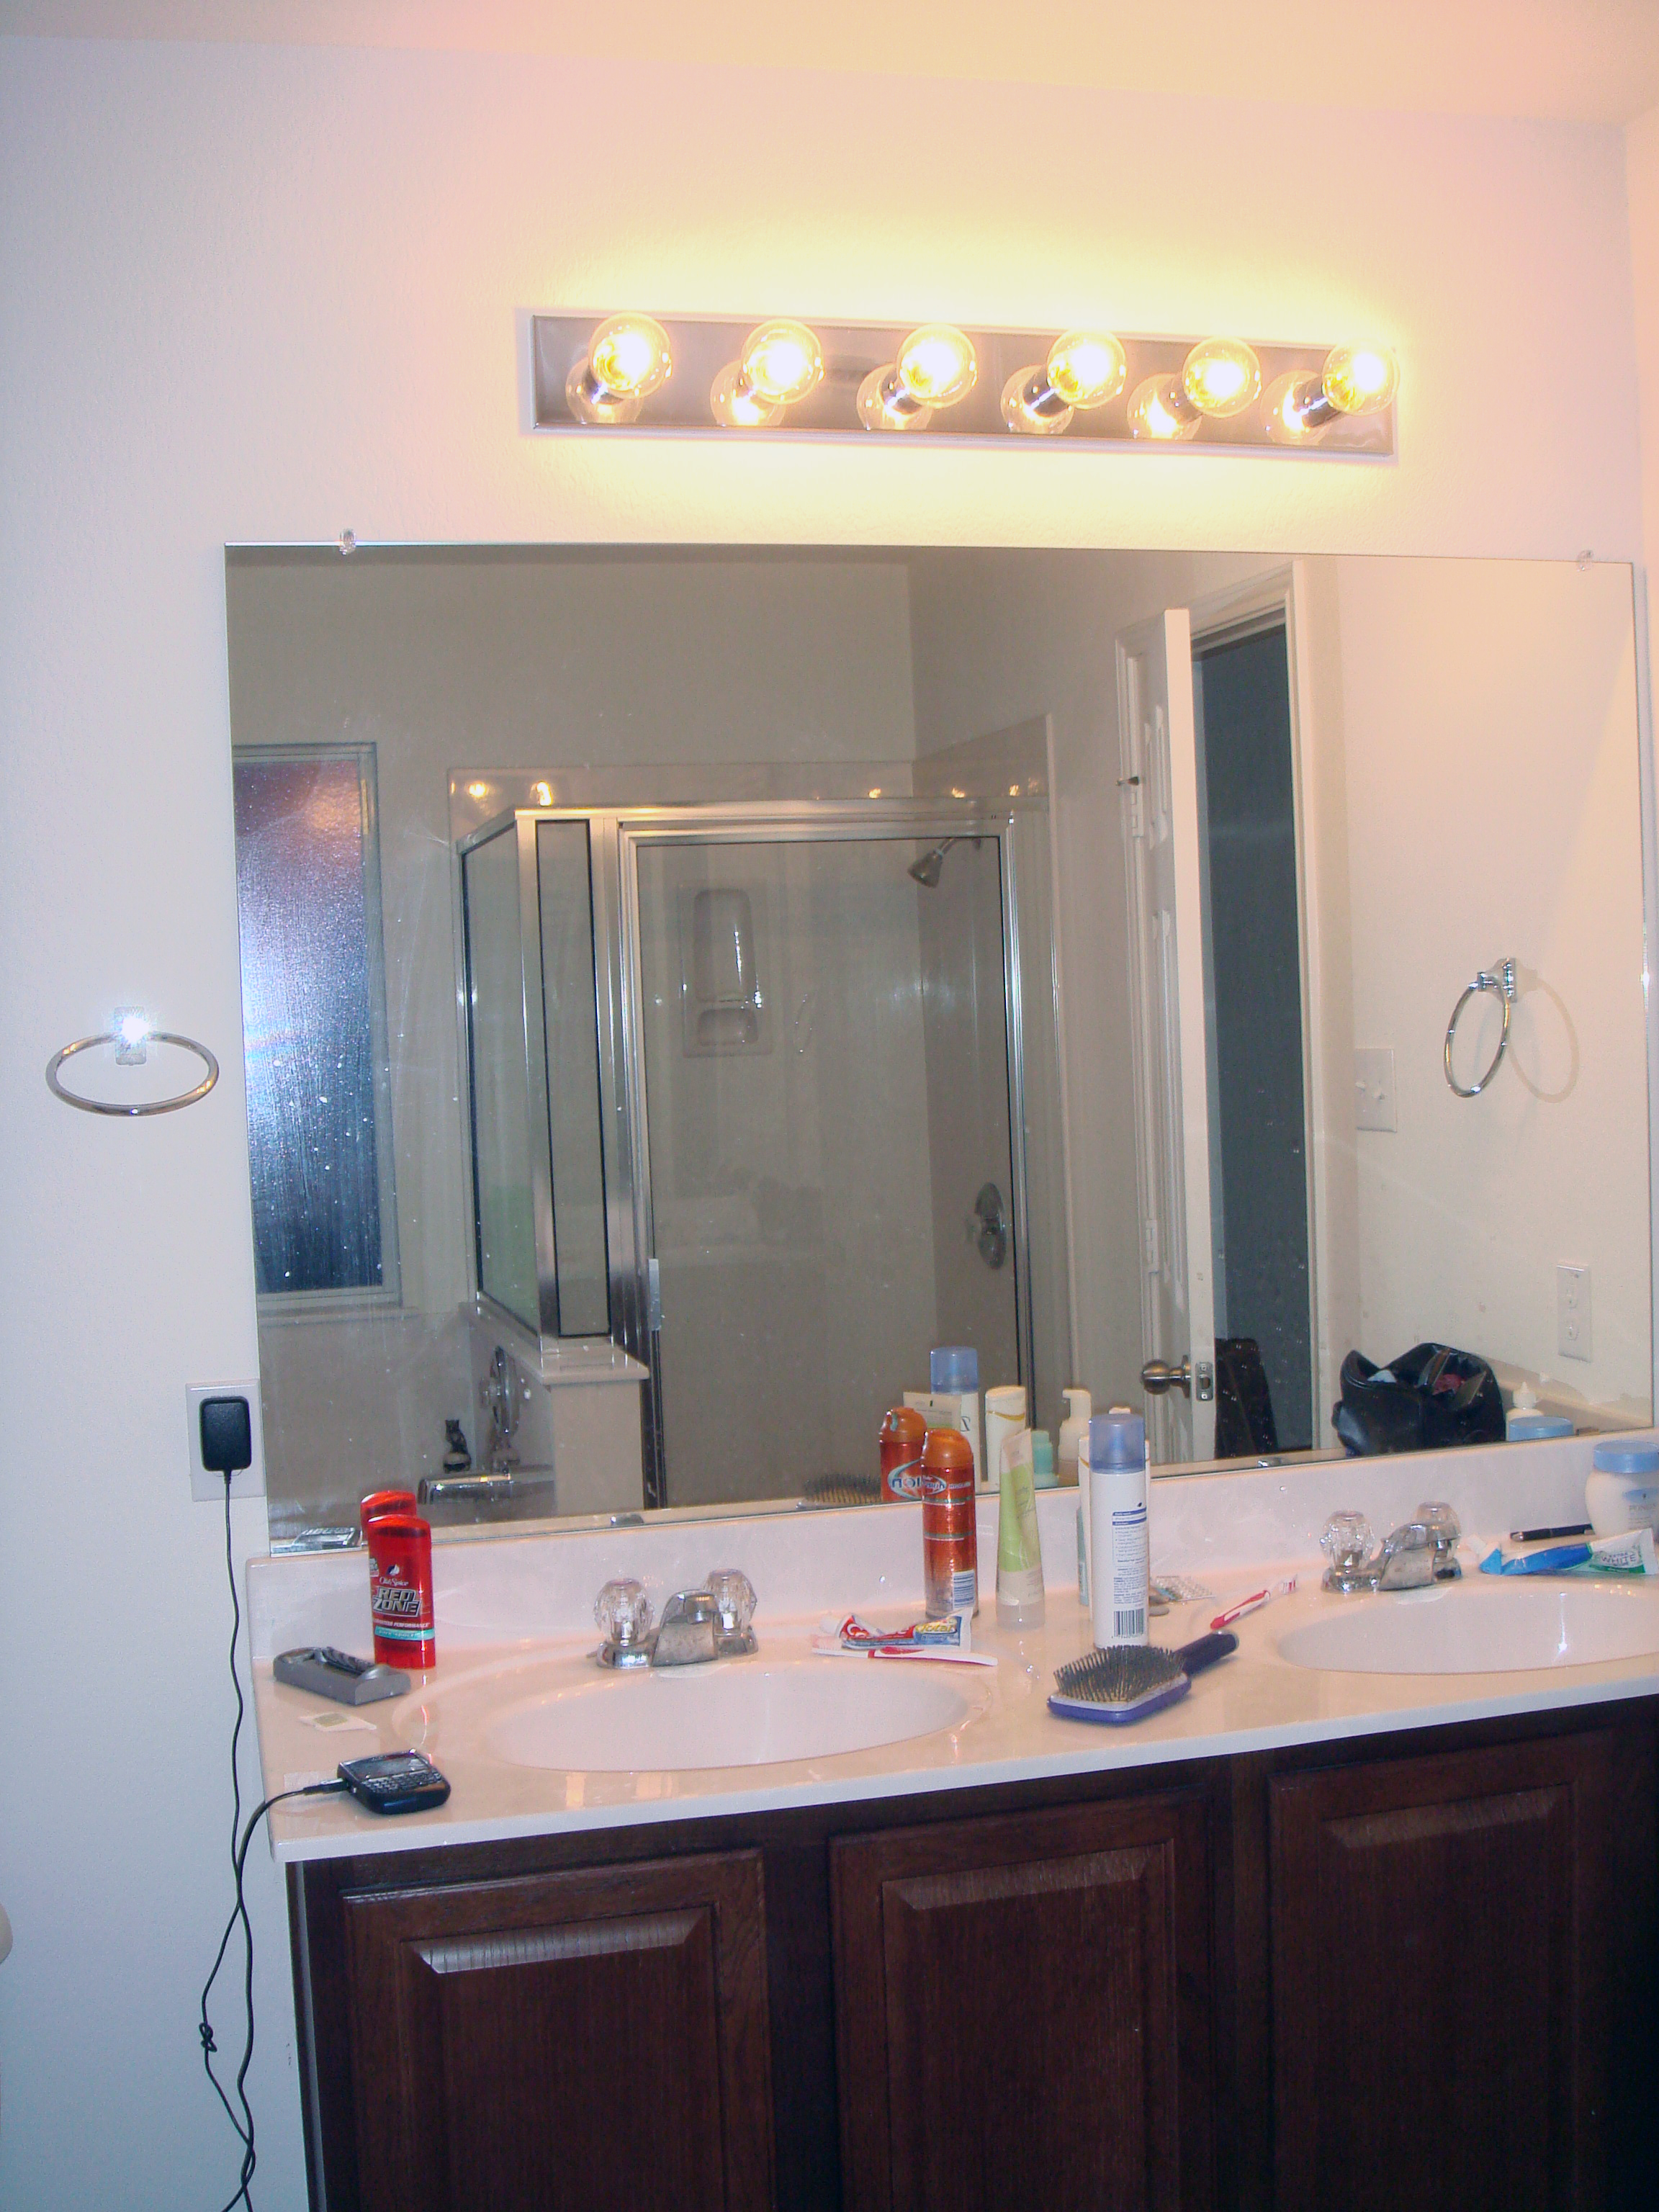 Bathroom lighting: ideas, choices, and indecision – What the Vita